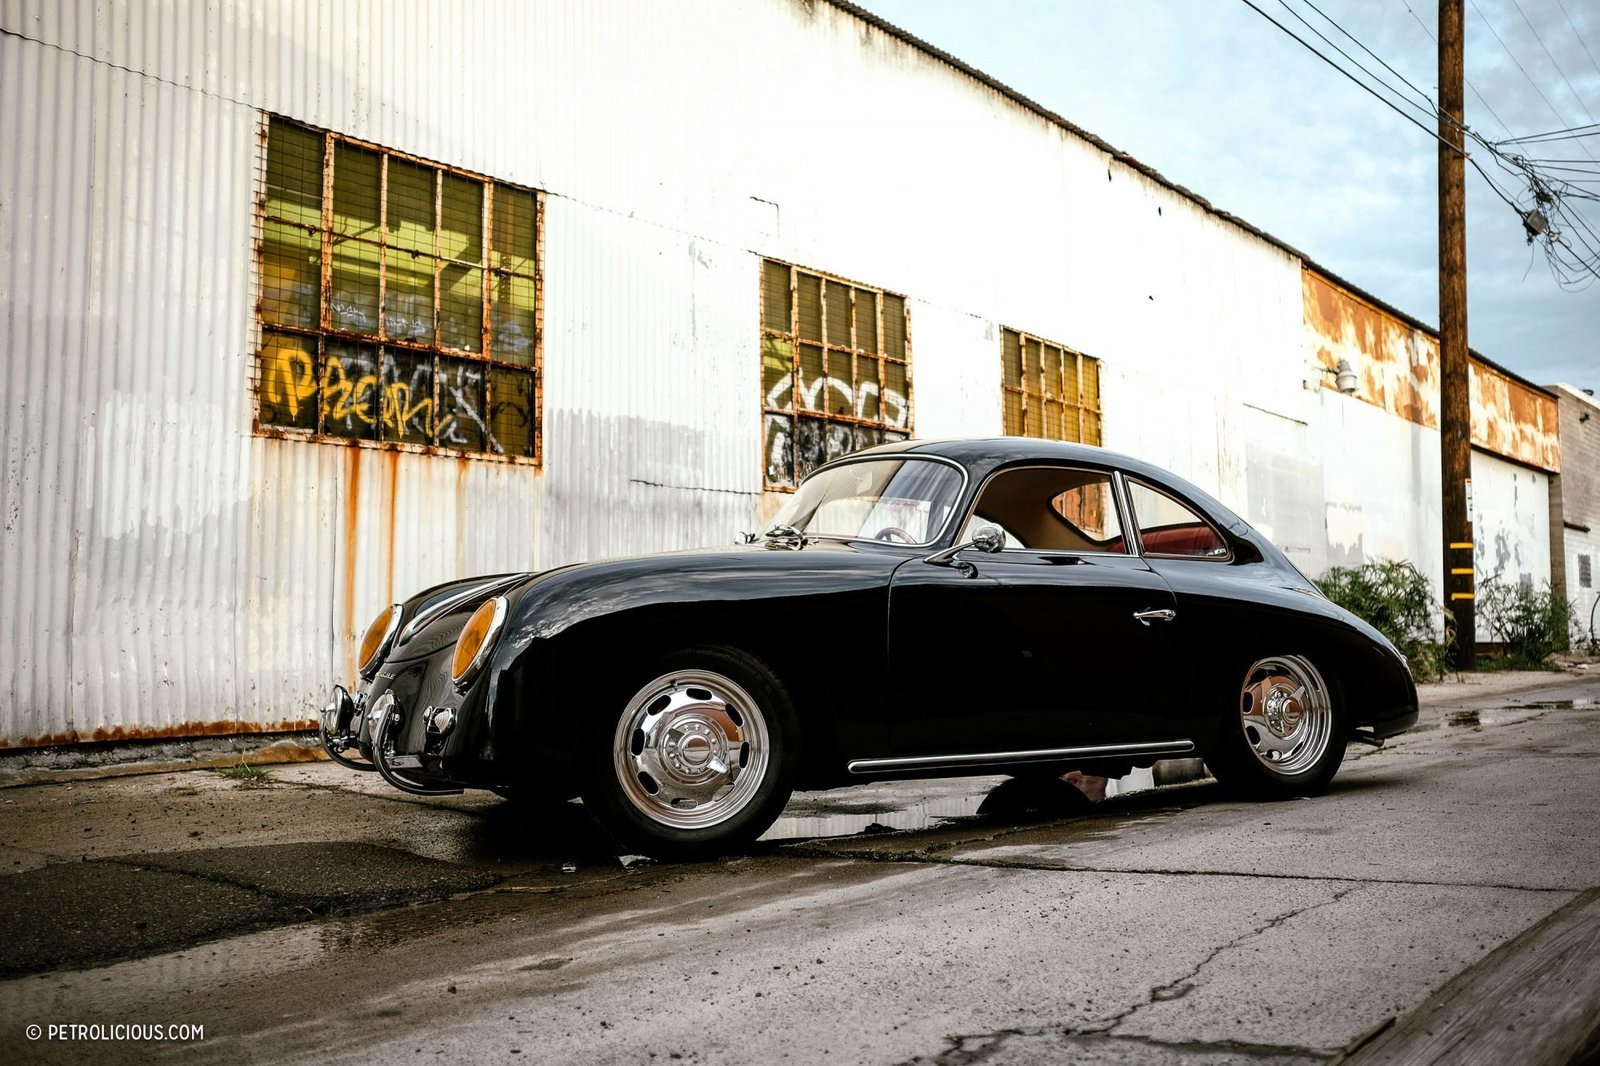 Photo 4 of 16 in This Stunning Outlaw 356 Can Be Found Cruising The Streets Of San Diego